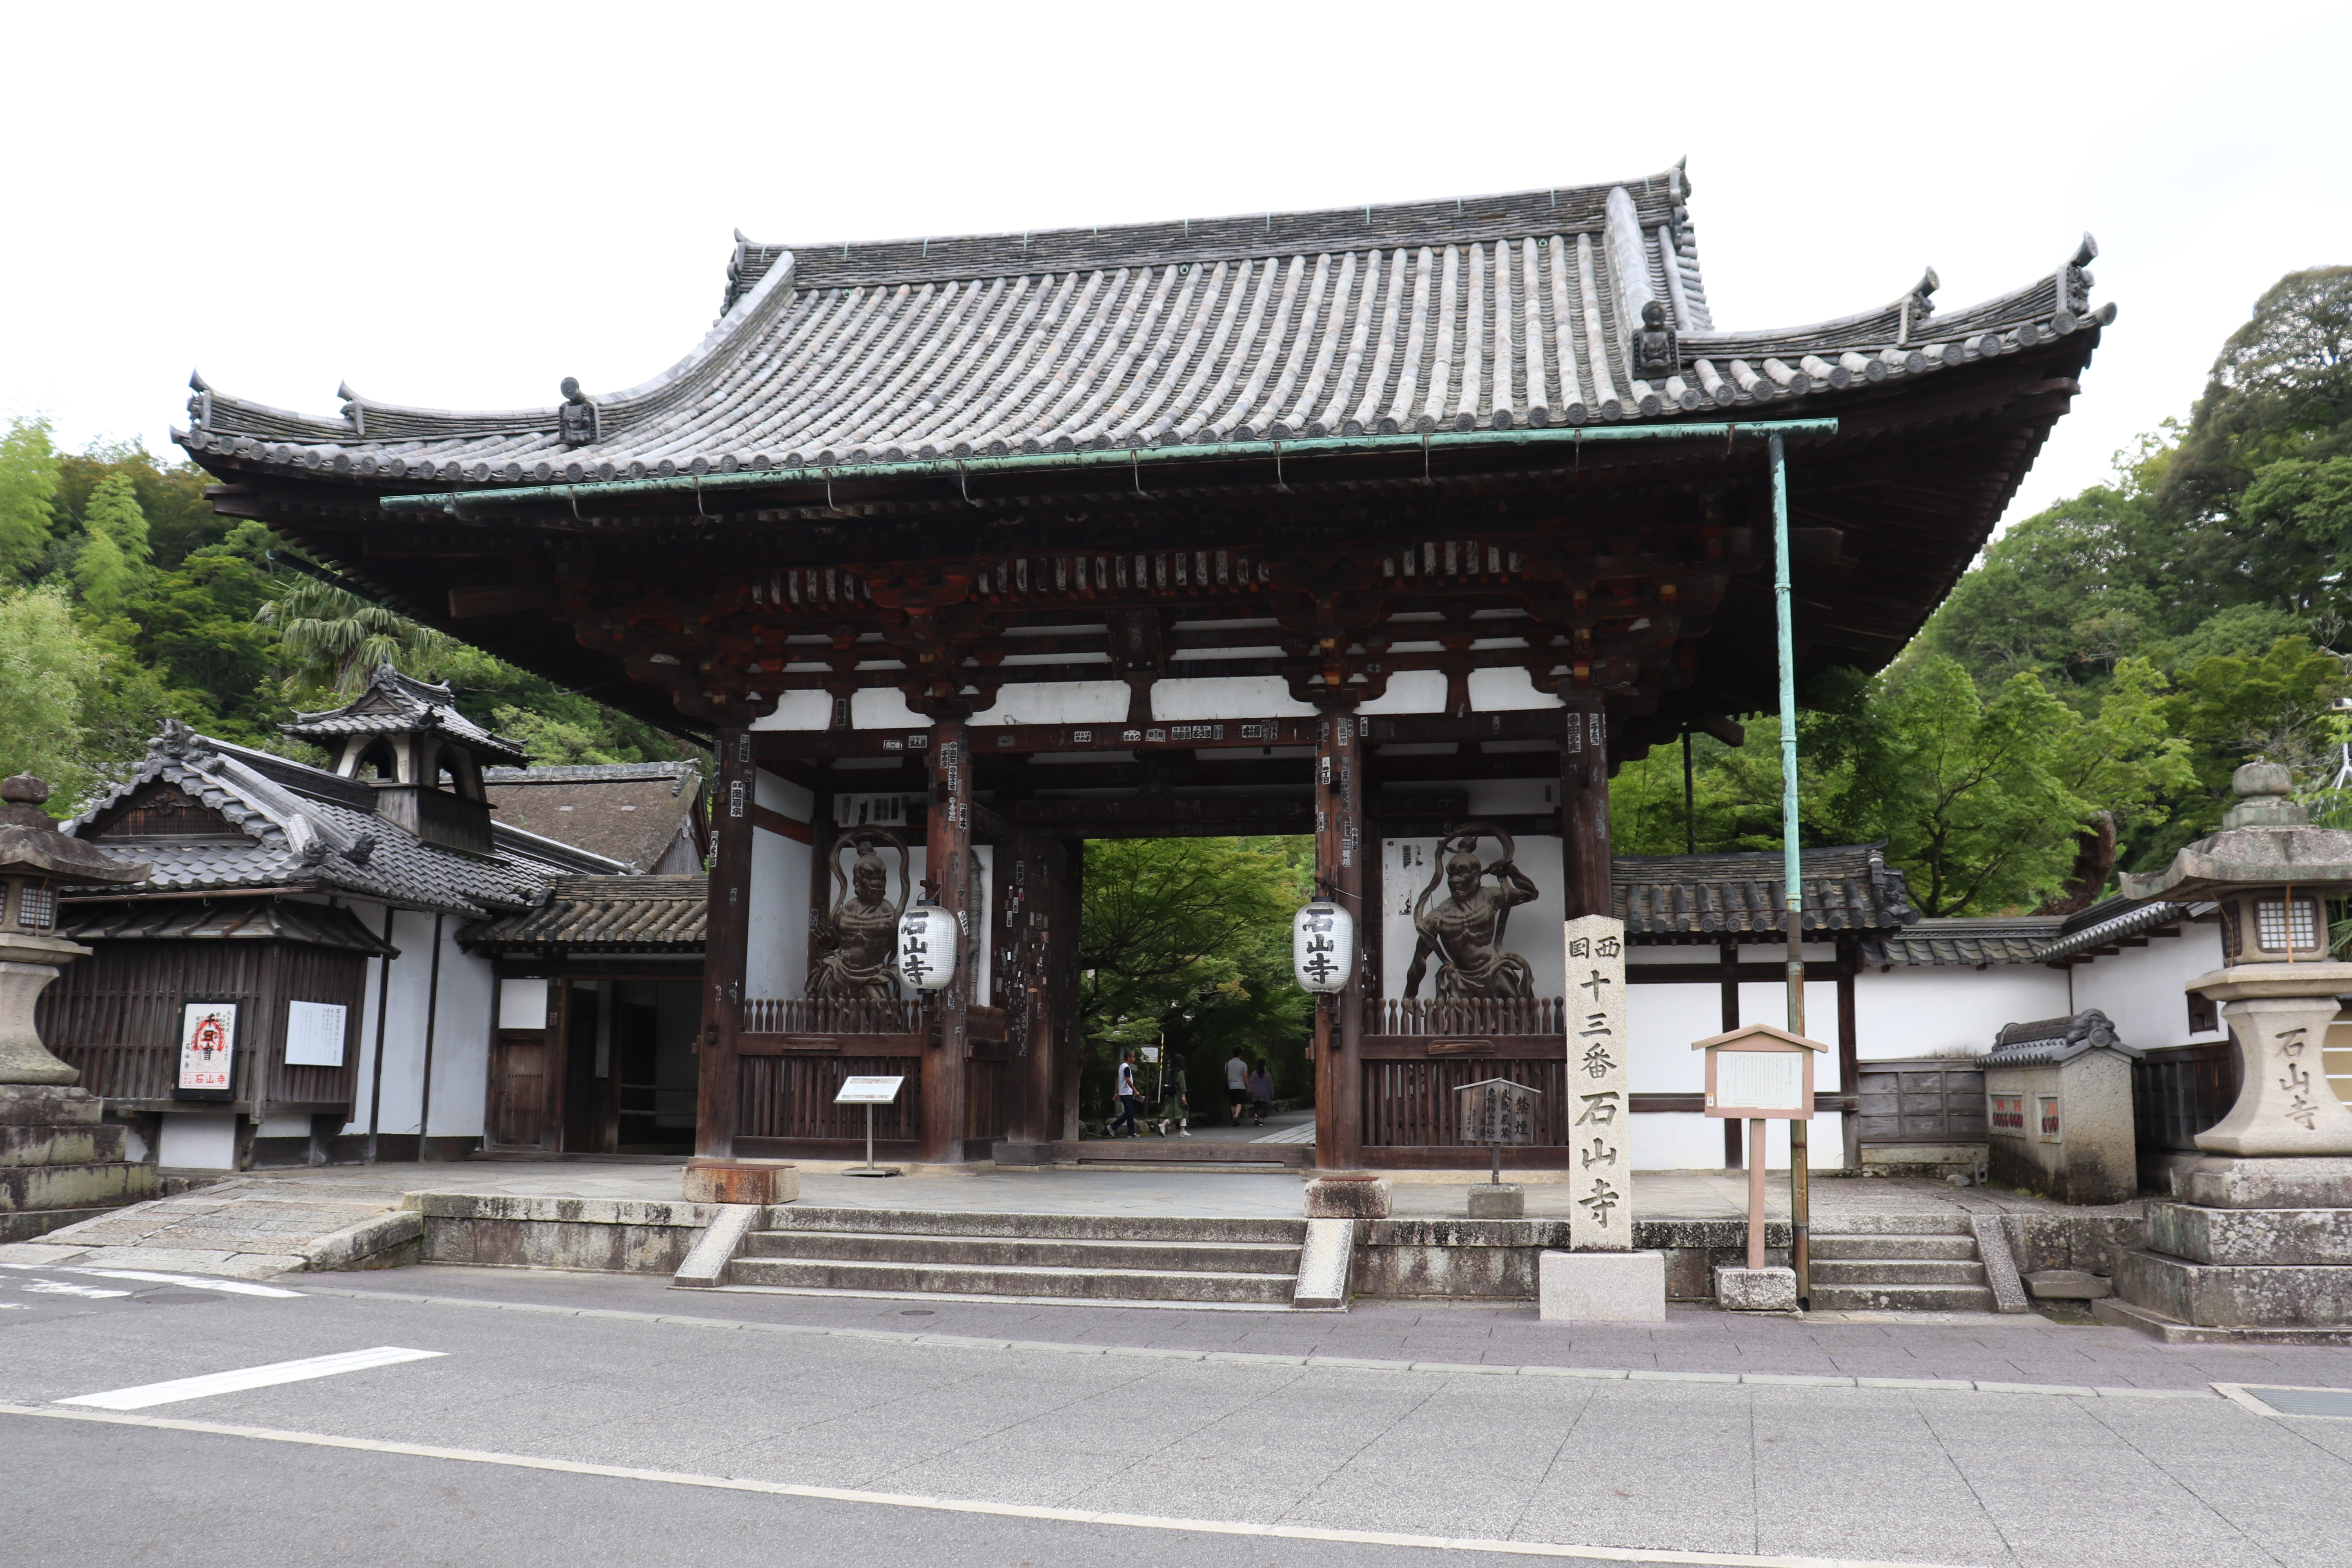 Temple gate of Ishiyama-dera temple in Shiga